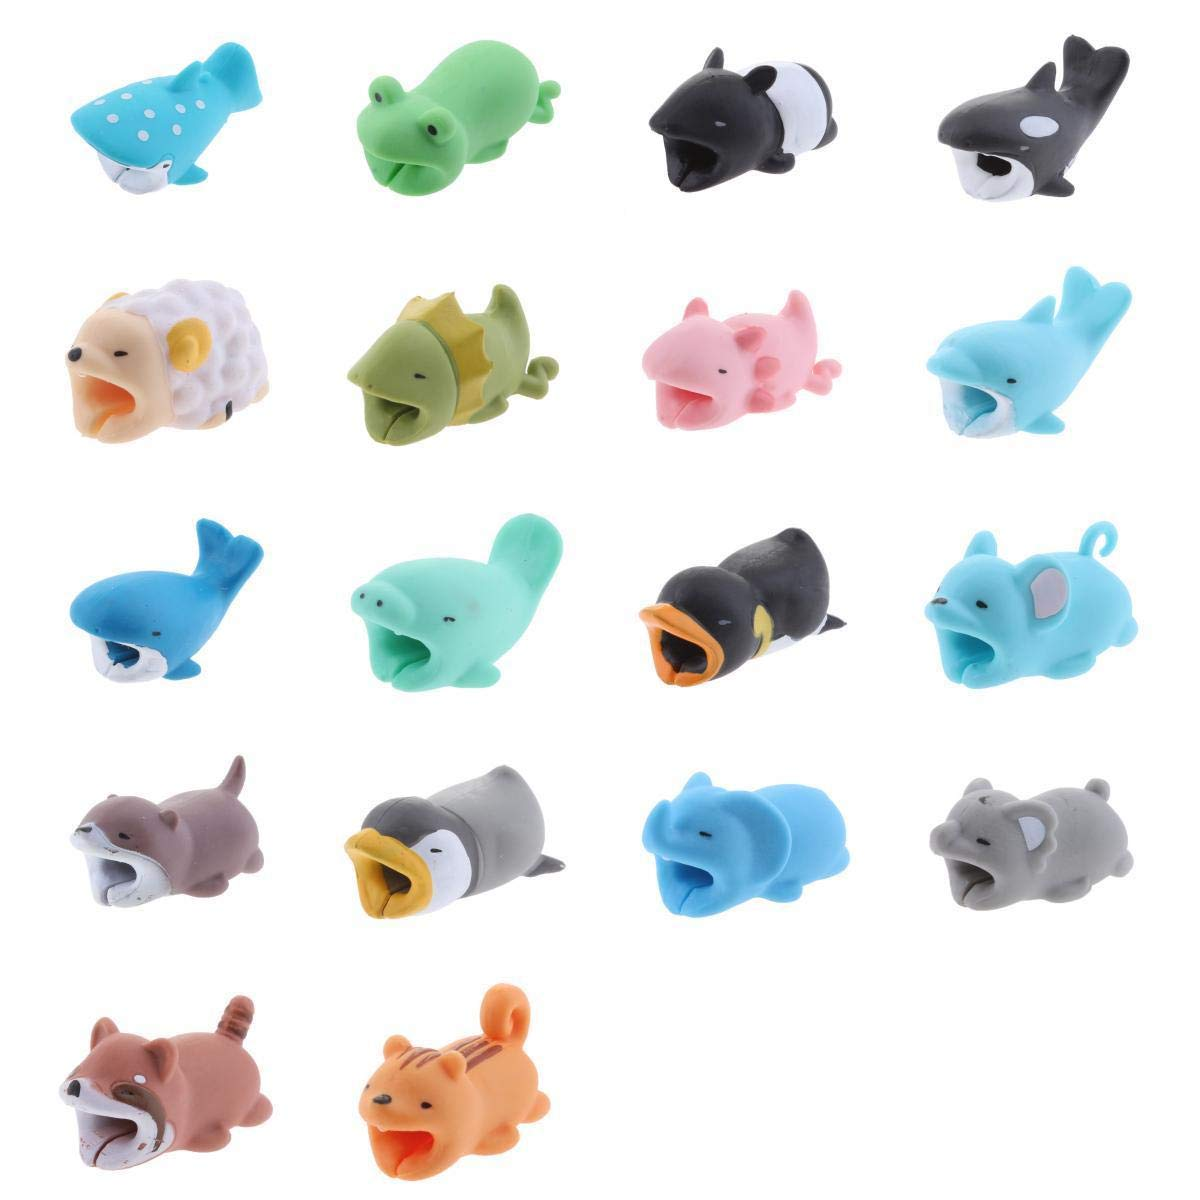 MagiDeal 18Pieces Animal Wire Protectors Headphone Cable Saver for Apple Android Universal Charging Cable Accessory